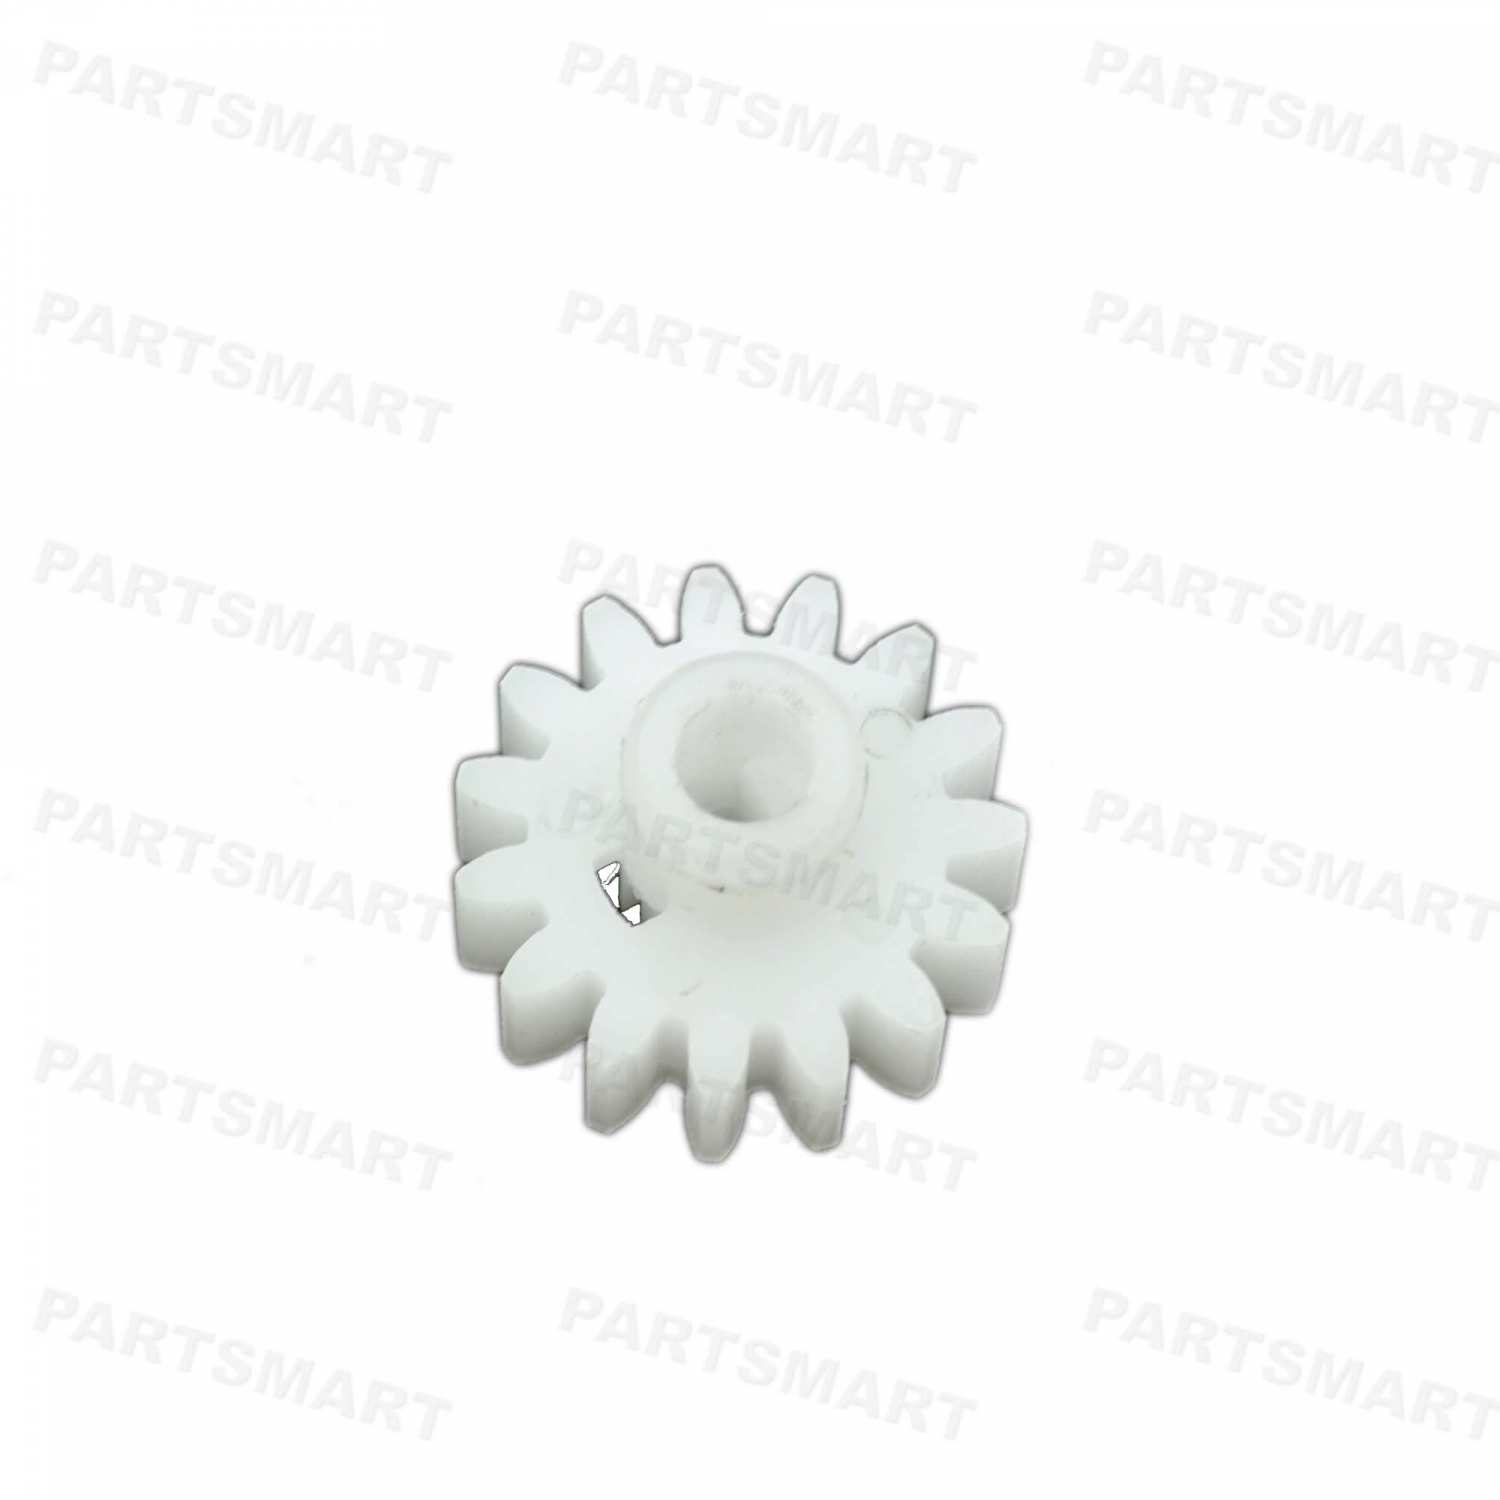 RS6-0443-000 Fuser Gear (15T) for HP LaserJet 2100